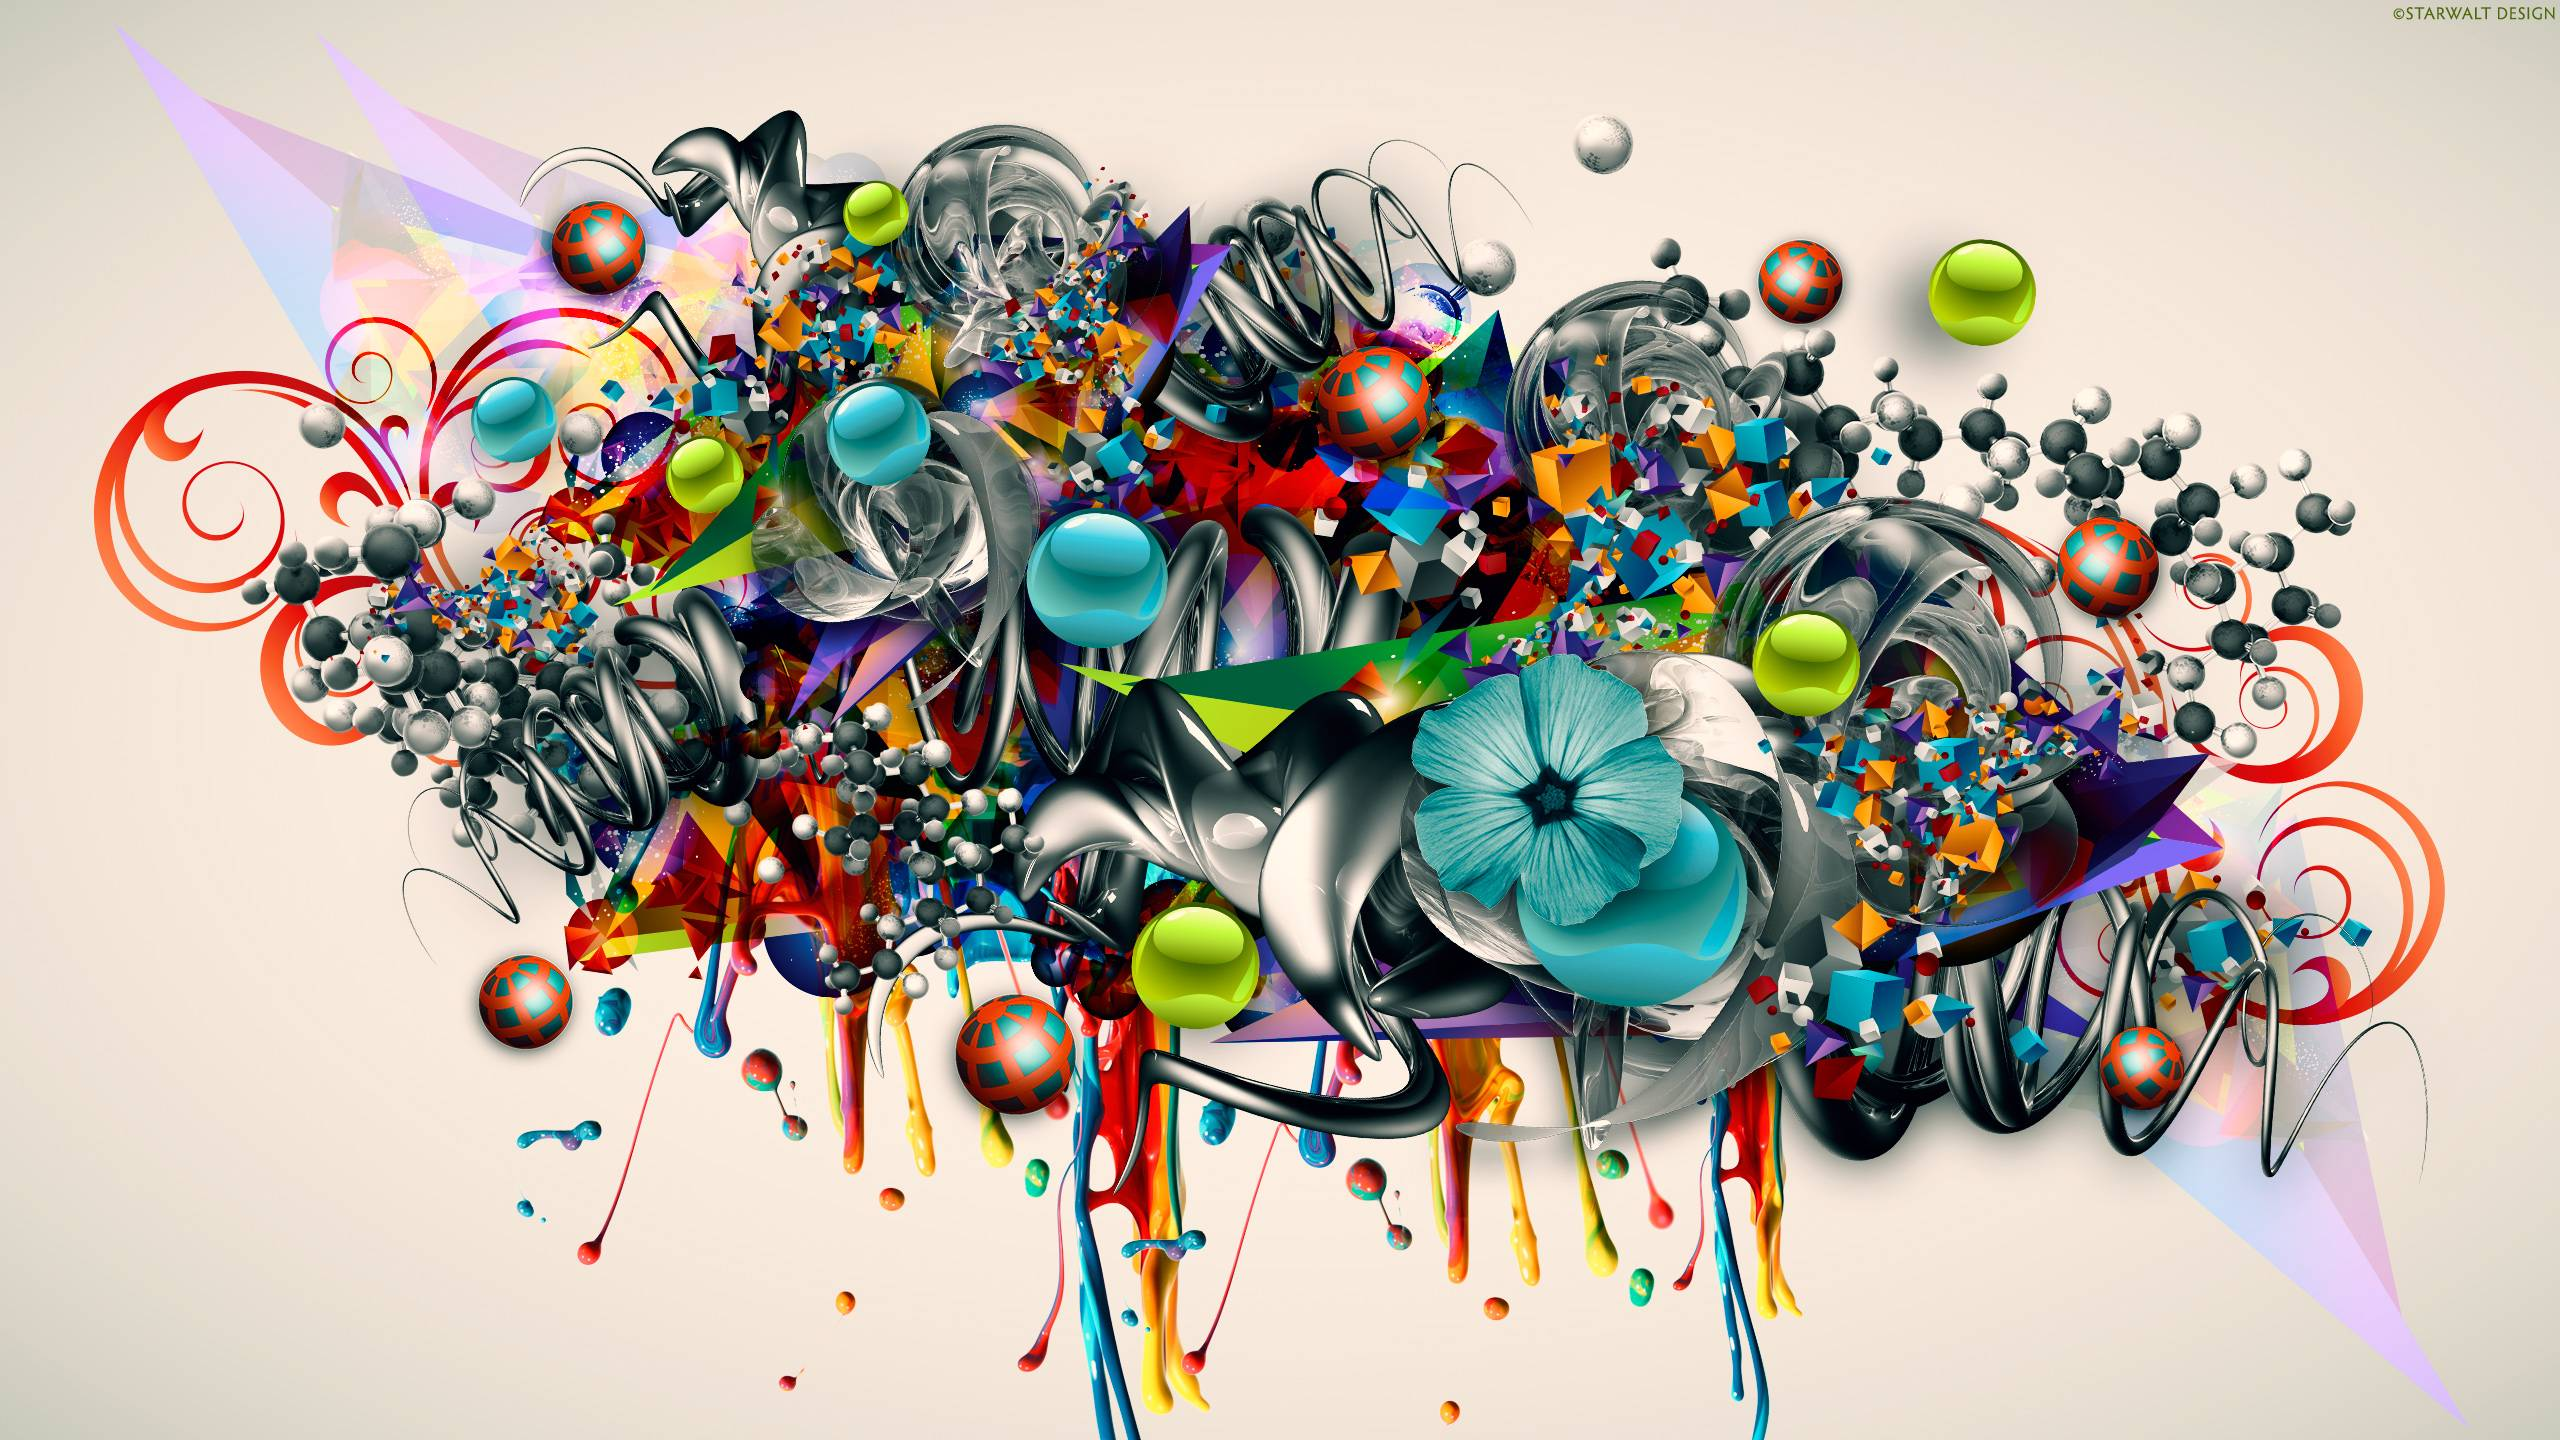 Graffiti Computer Wallpapers Desktop Backgrounds 2560x1440 ID 2560x1440